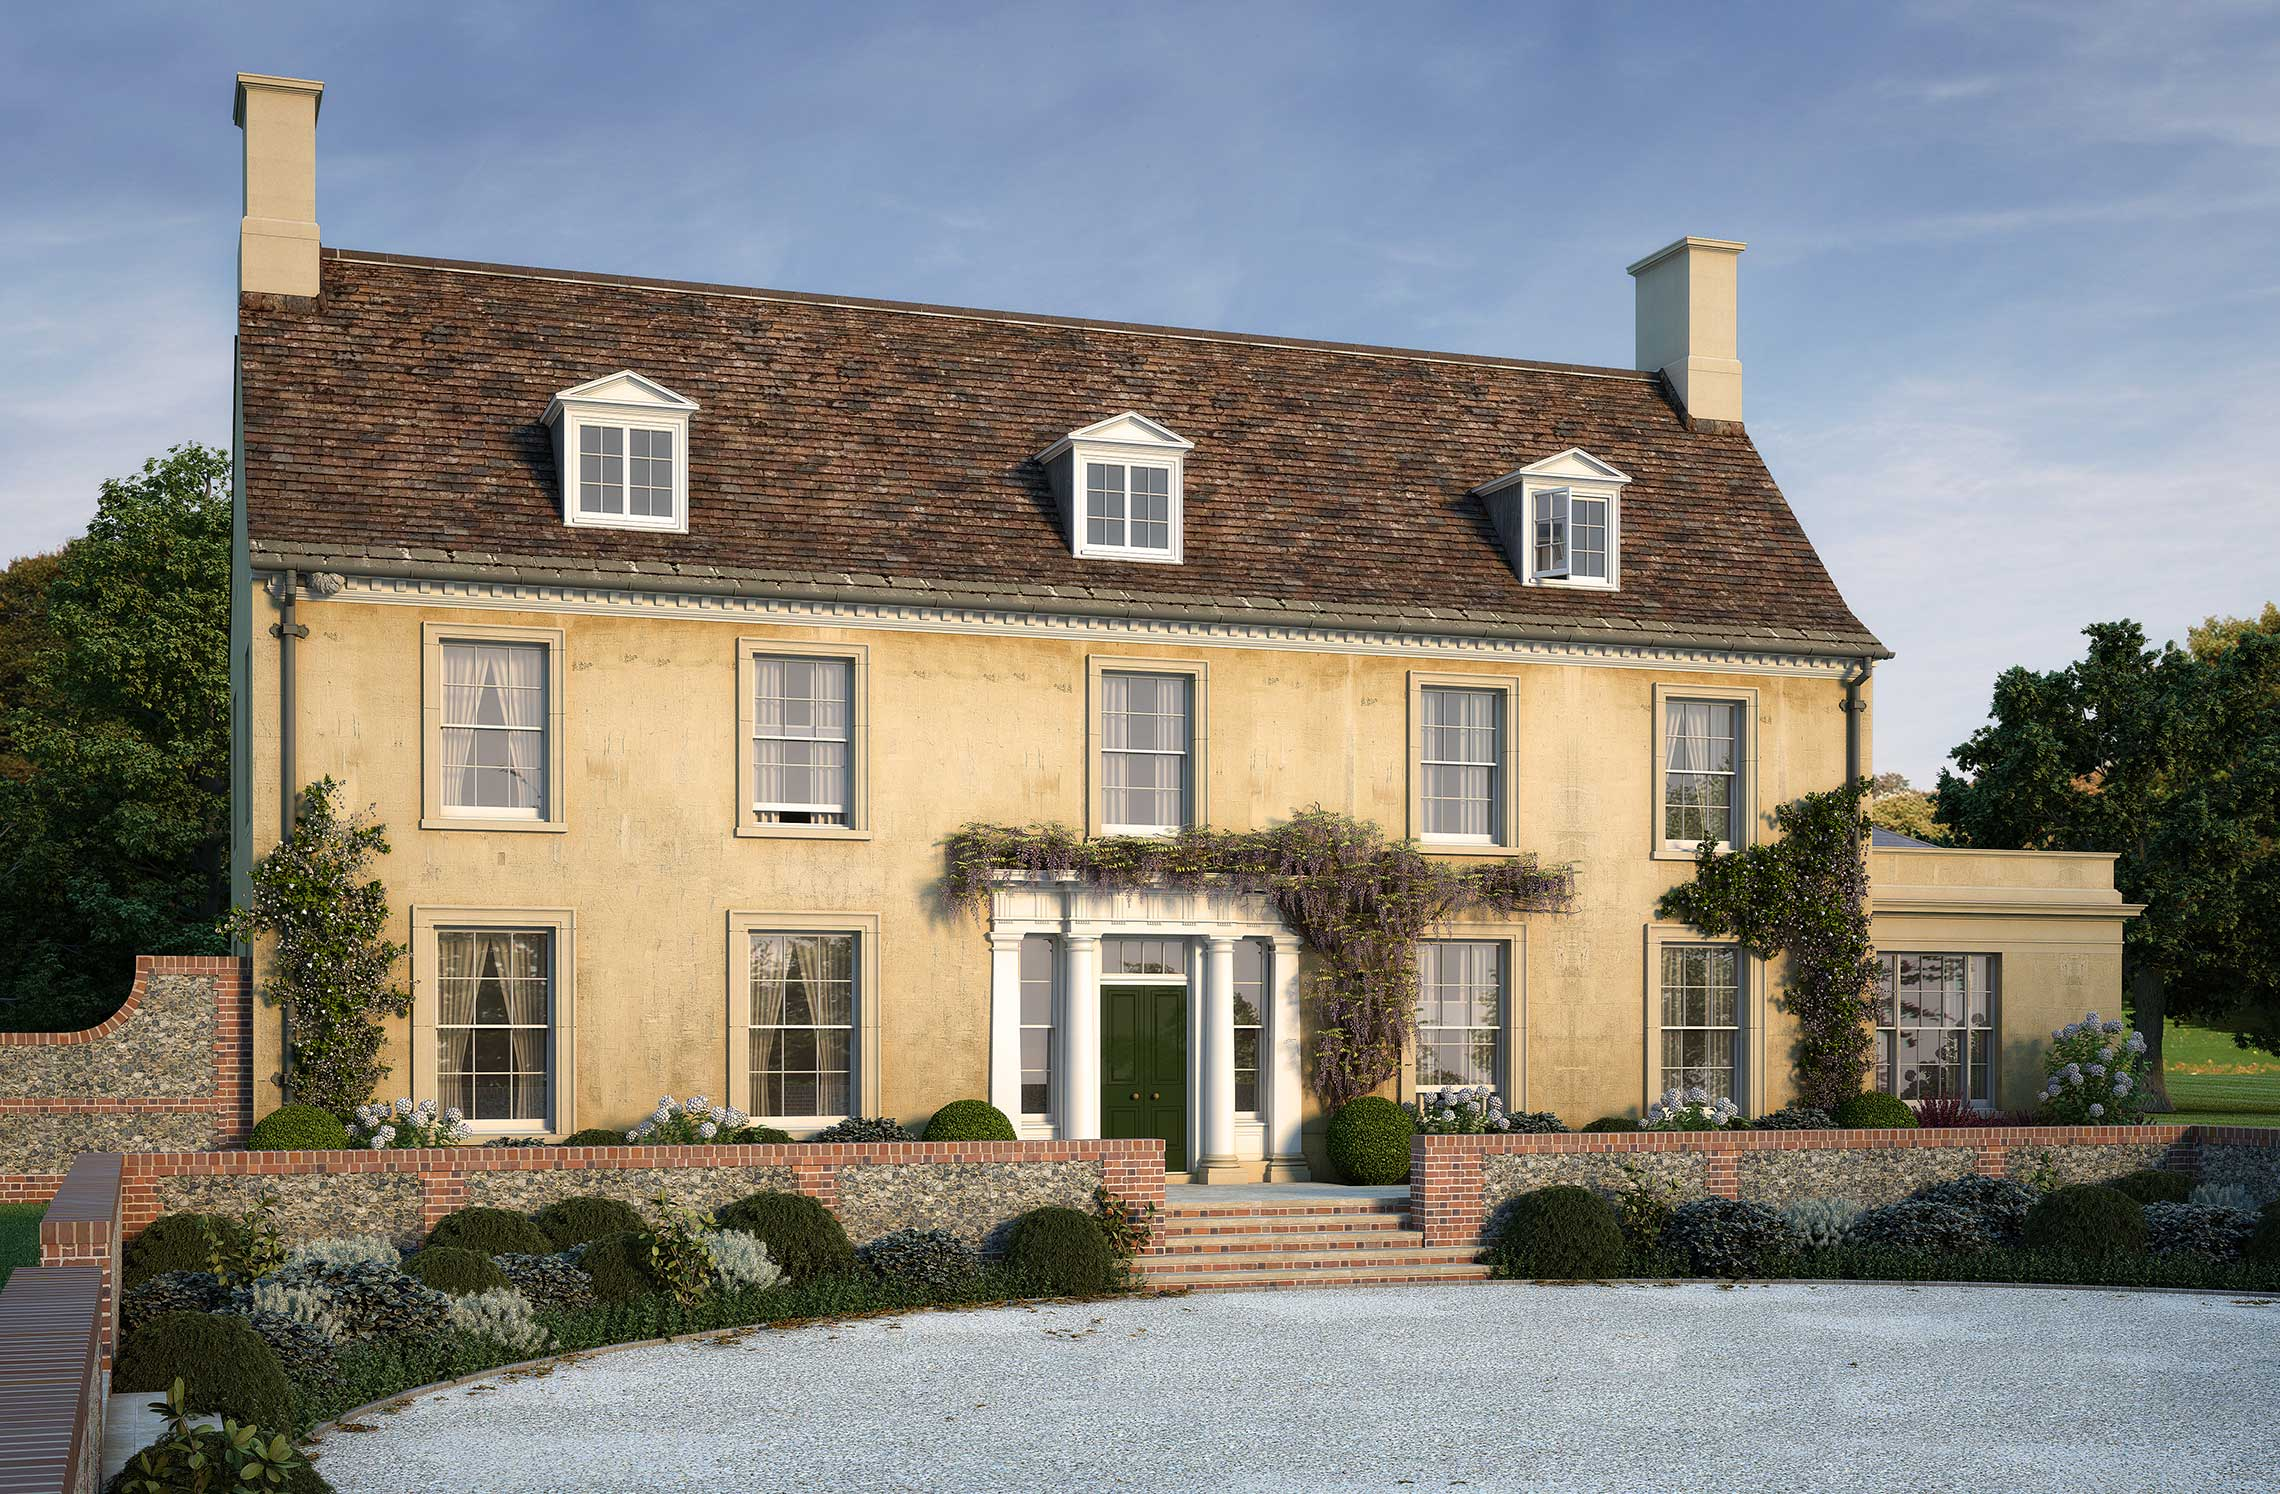 Awesome 20 Images New Build Georgian House  Building Plans Online